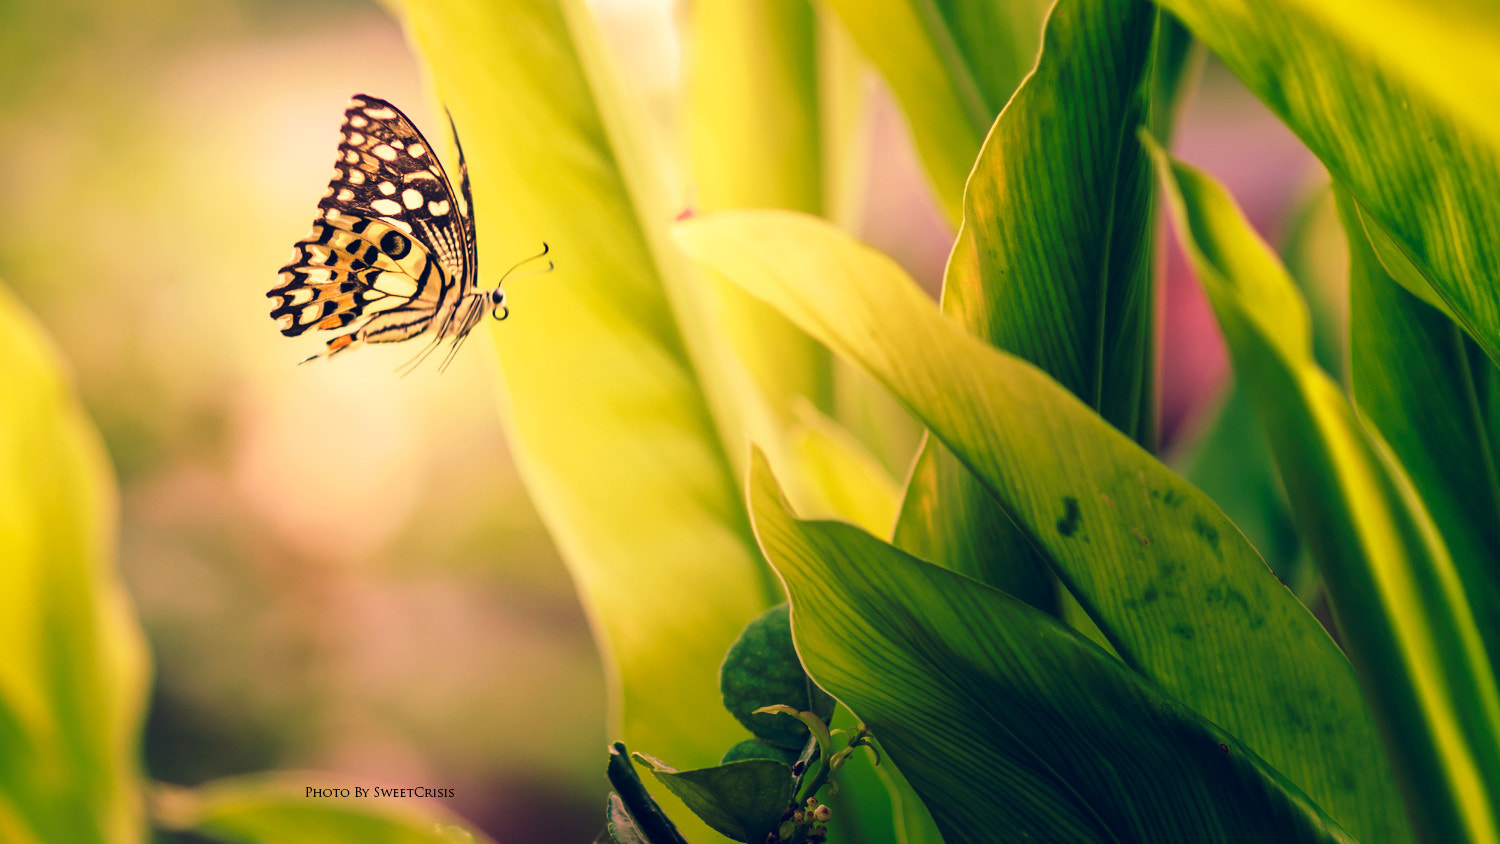 Photograph Fly by Peerasith Chaisanit on 500px